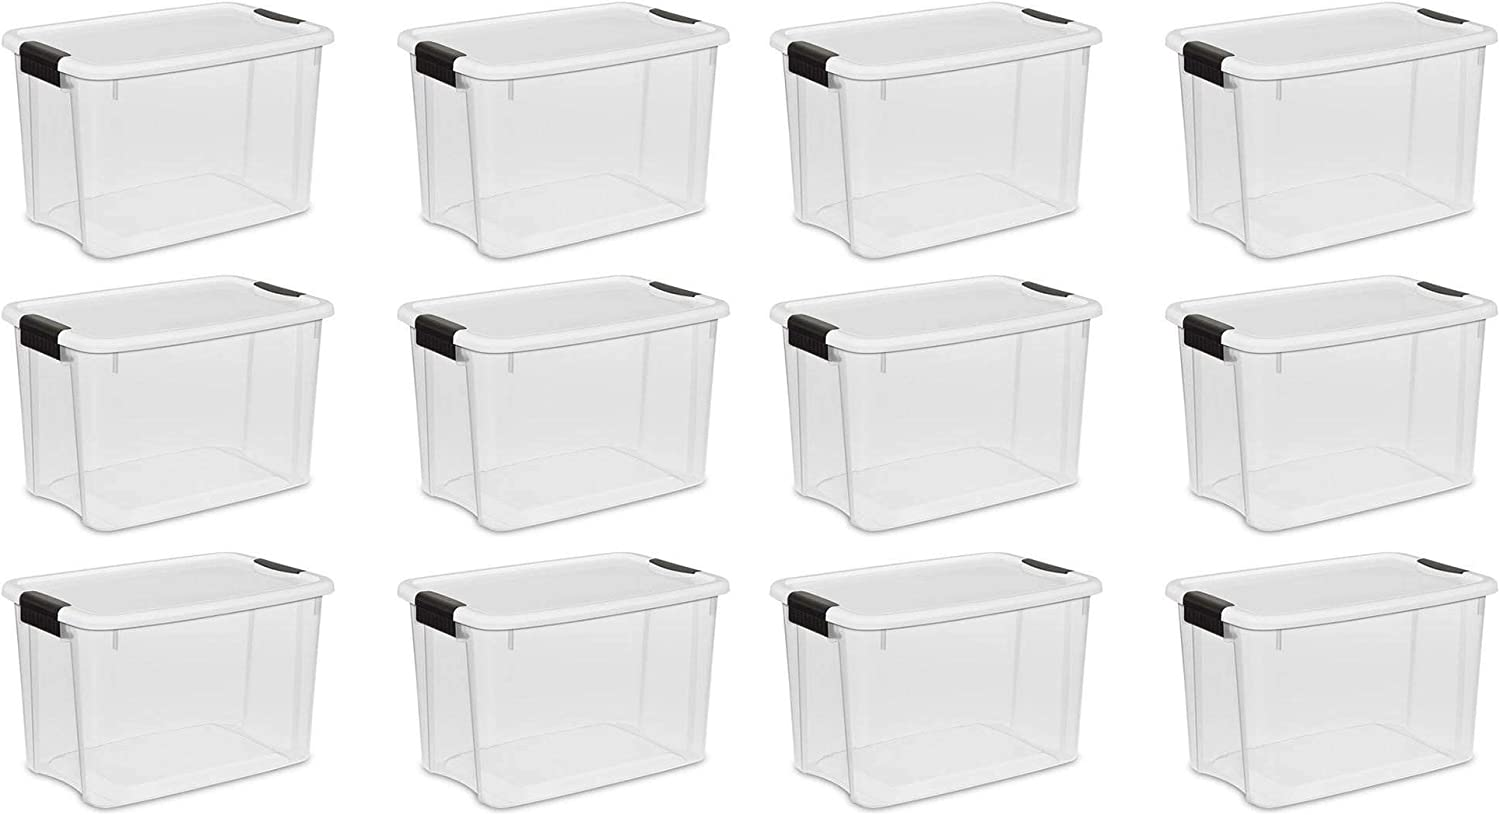 STERILITE 19859806, 30 Quart/28 Liter Ultra Latch Box, Clear with a White Lid and Black Latches